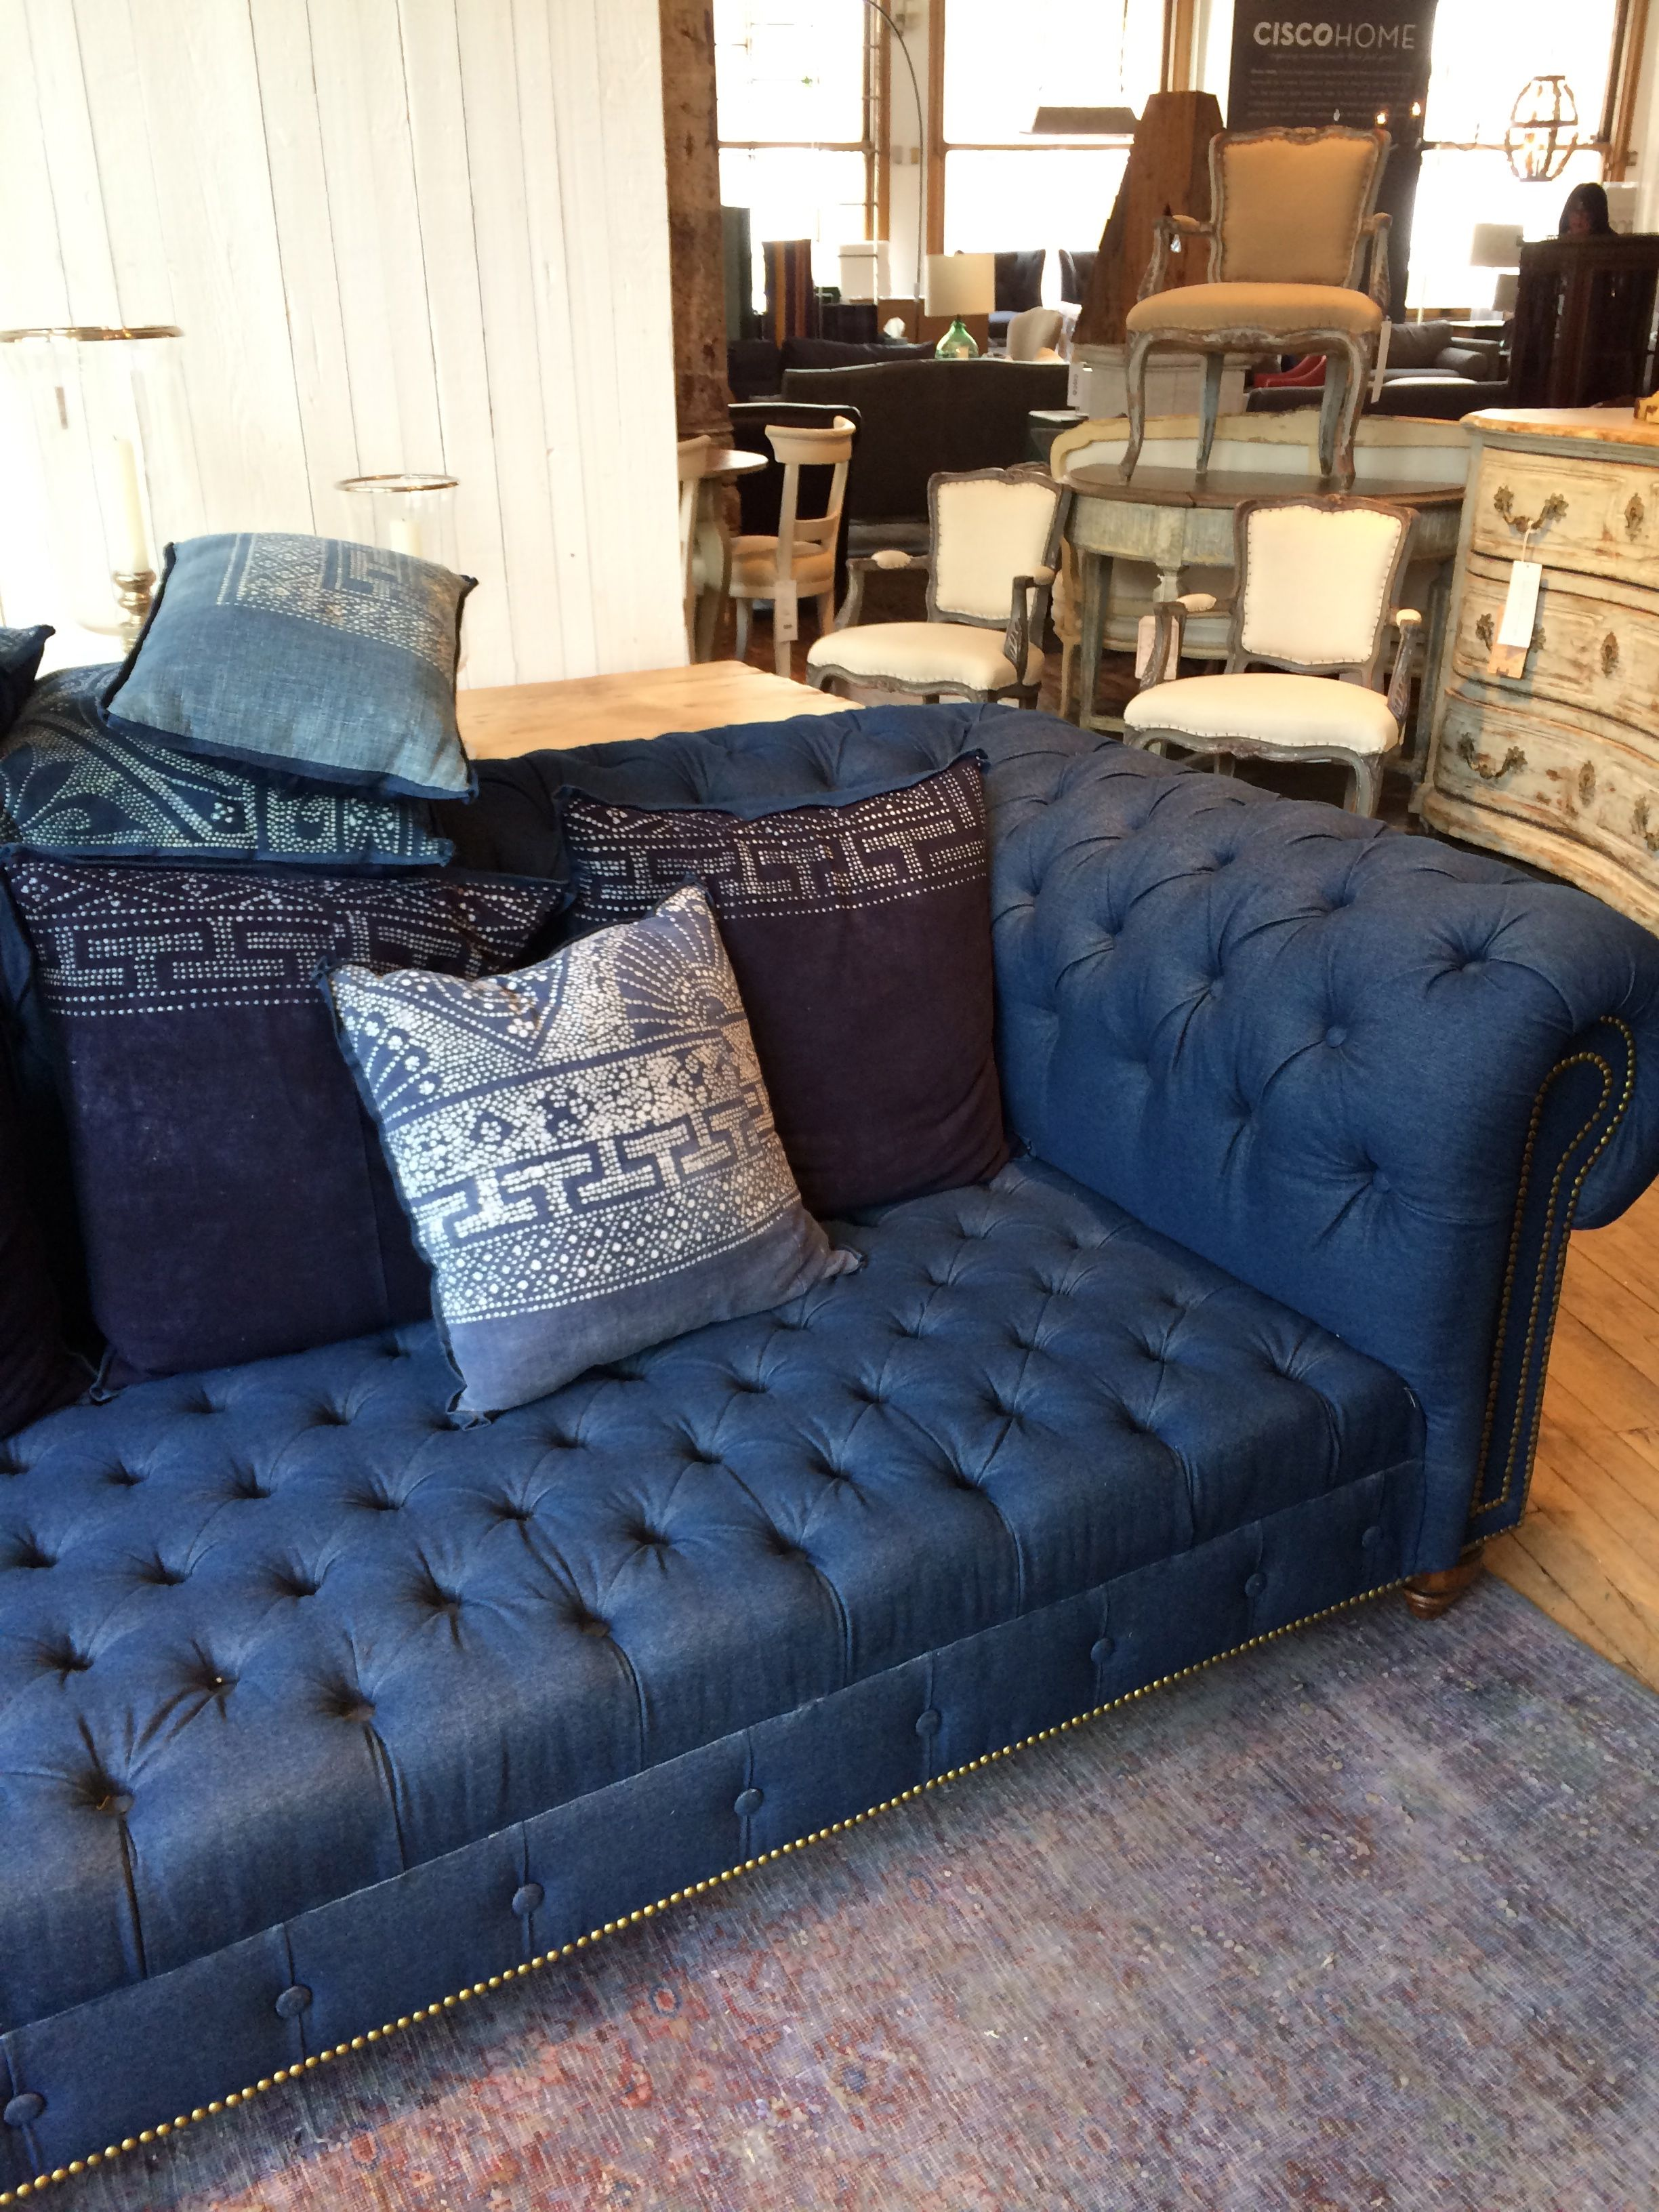 Chesterfield Sofa Living Room Ideas Denim Sofa Now This Is A Denim Sofa I Can Get On Board